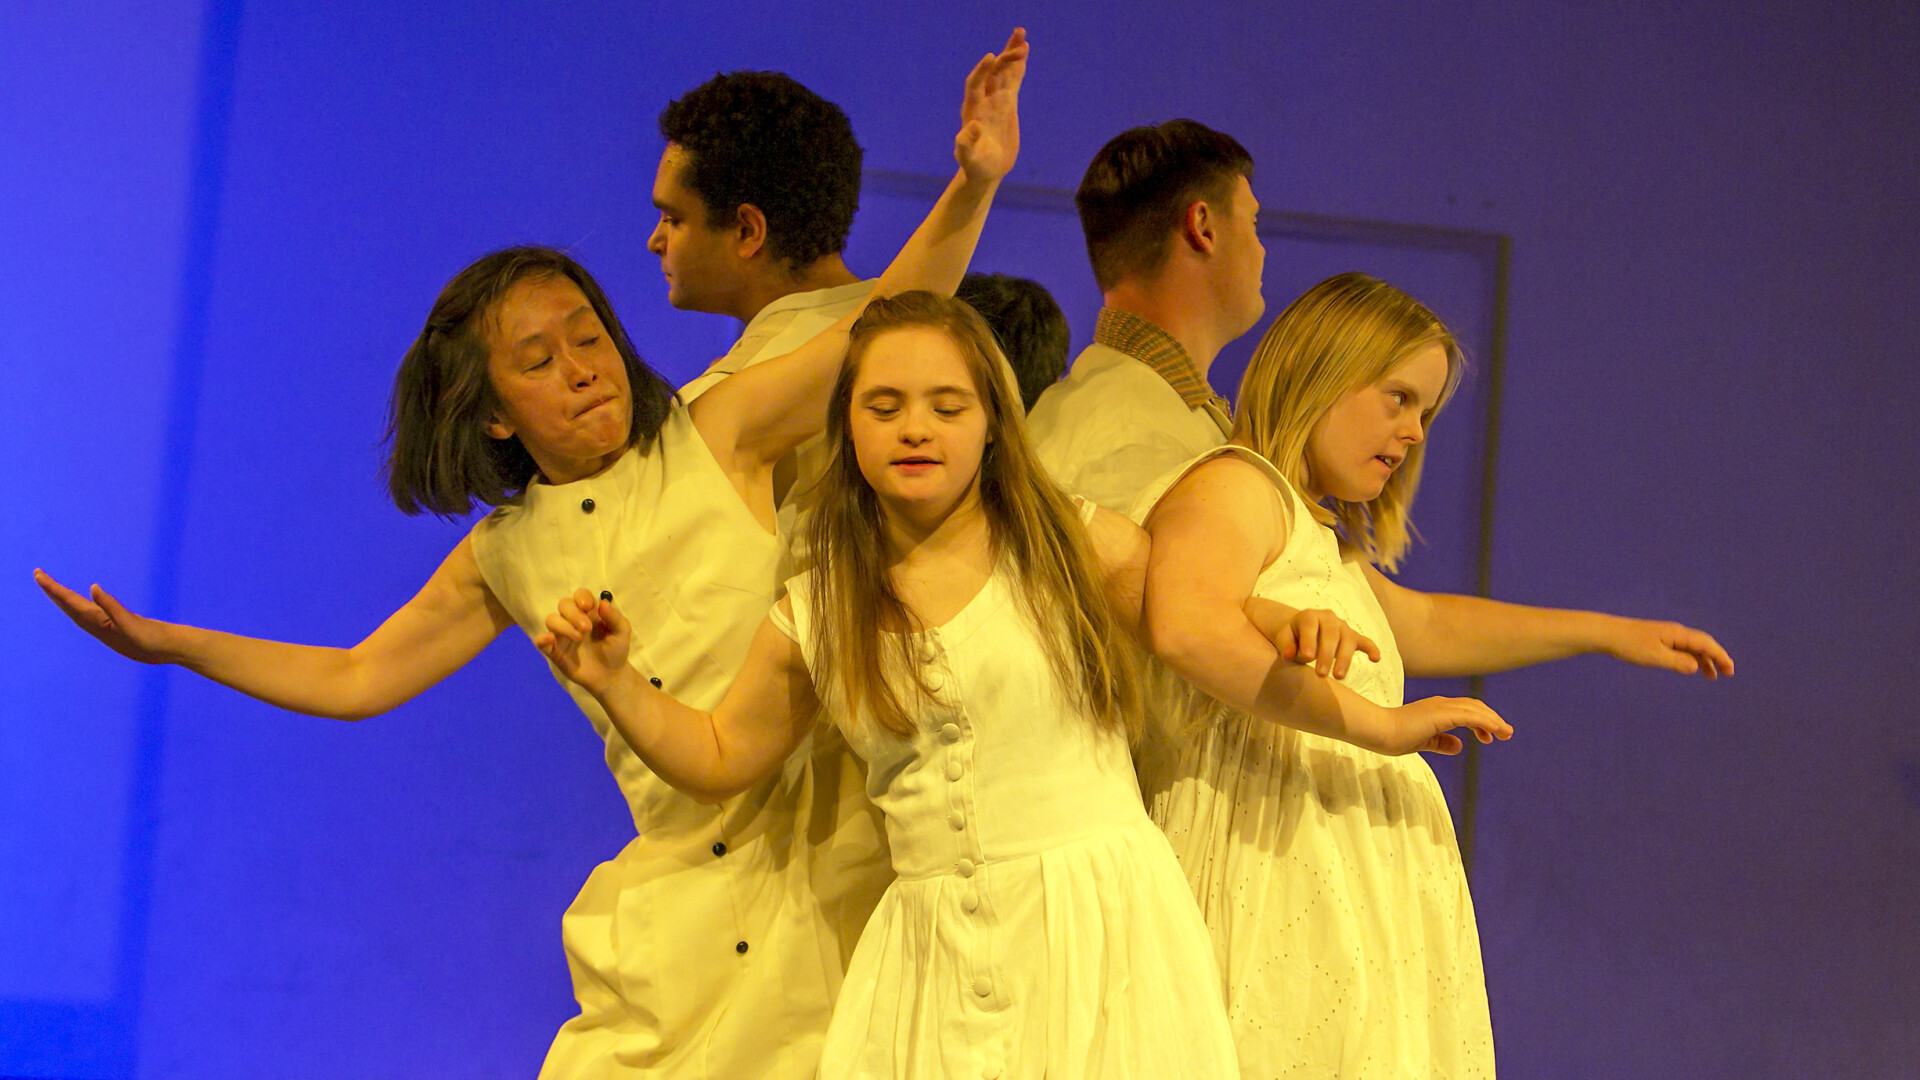 A group of dancers wearing white clothes in front of a blue background.